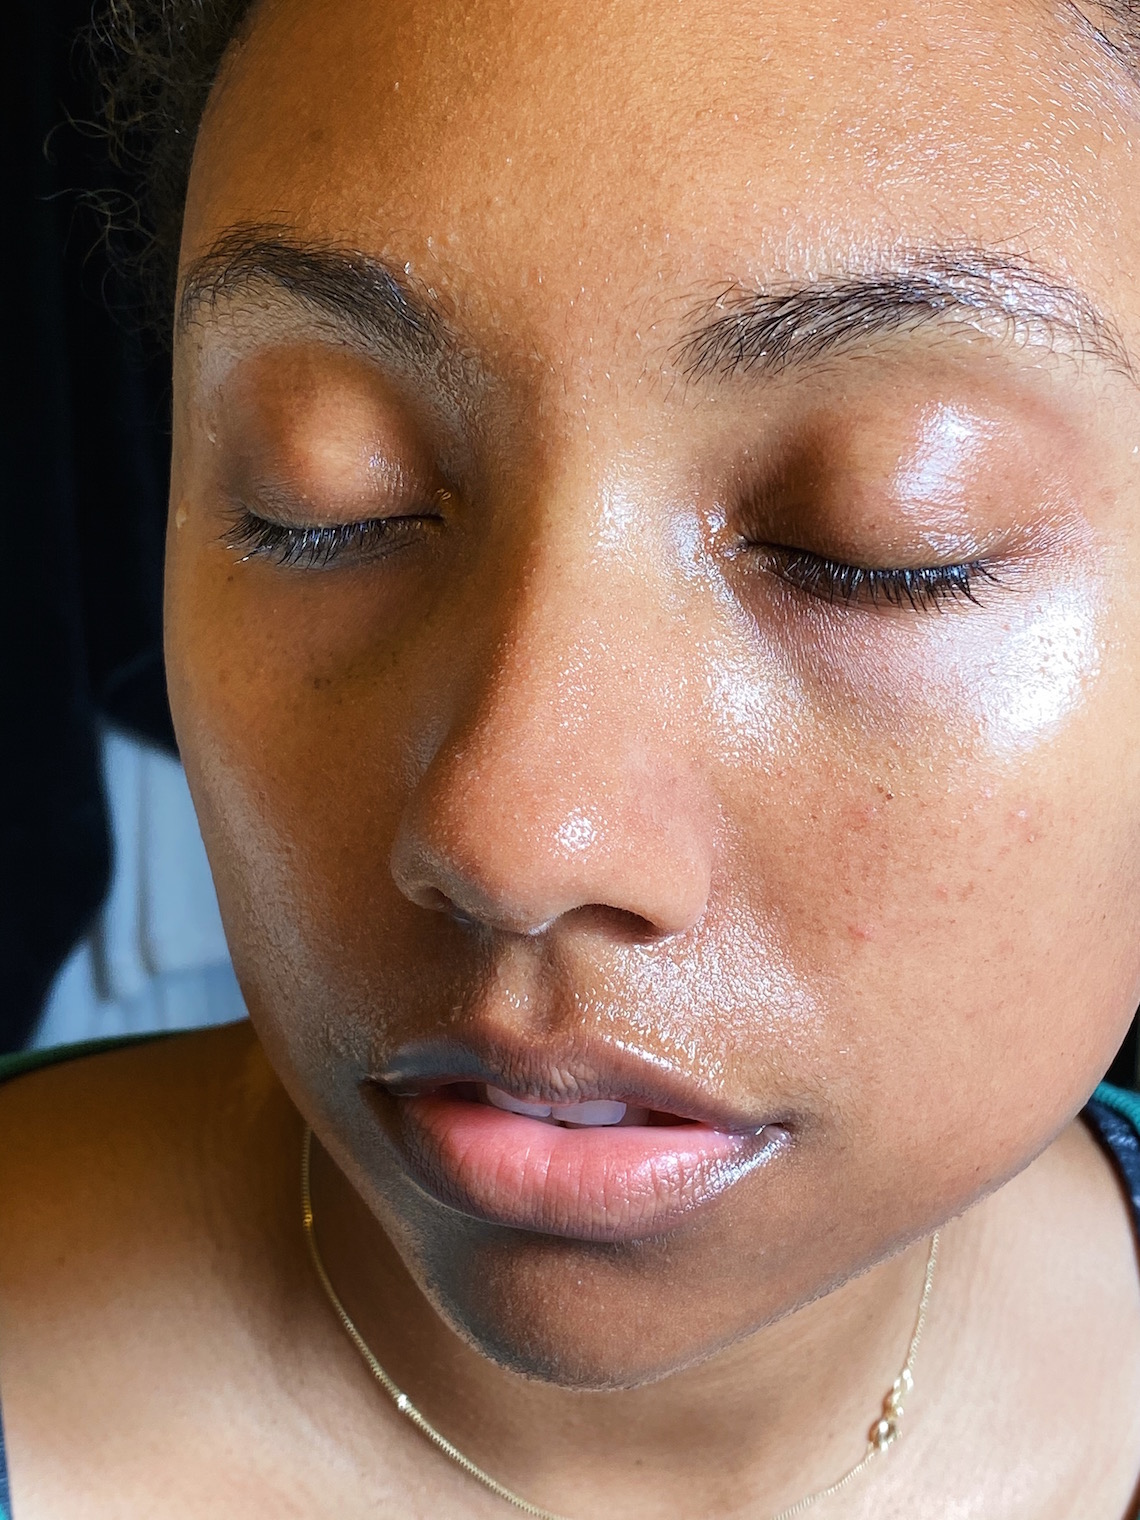 rinsed face-wet face-skin care routine